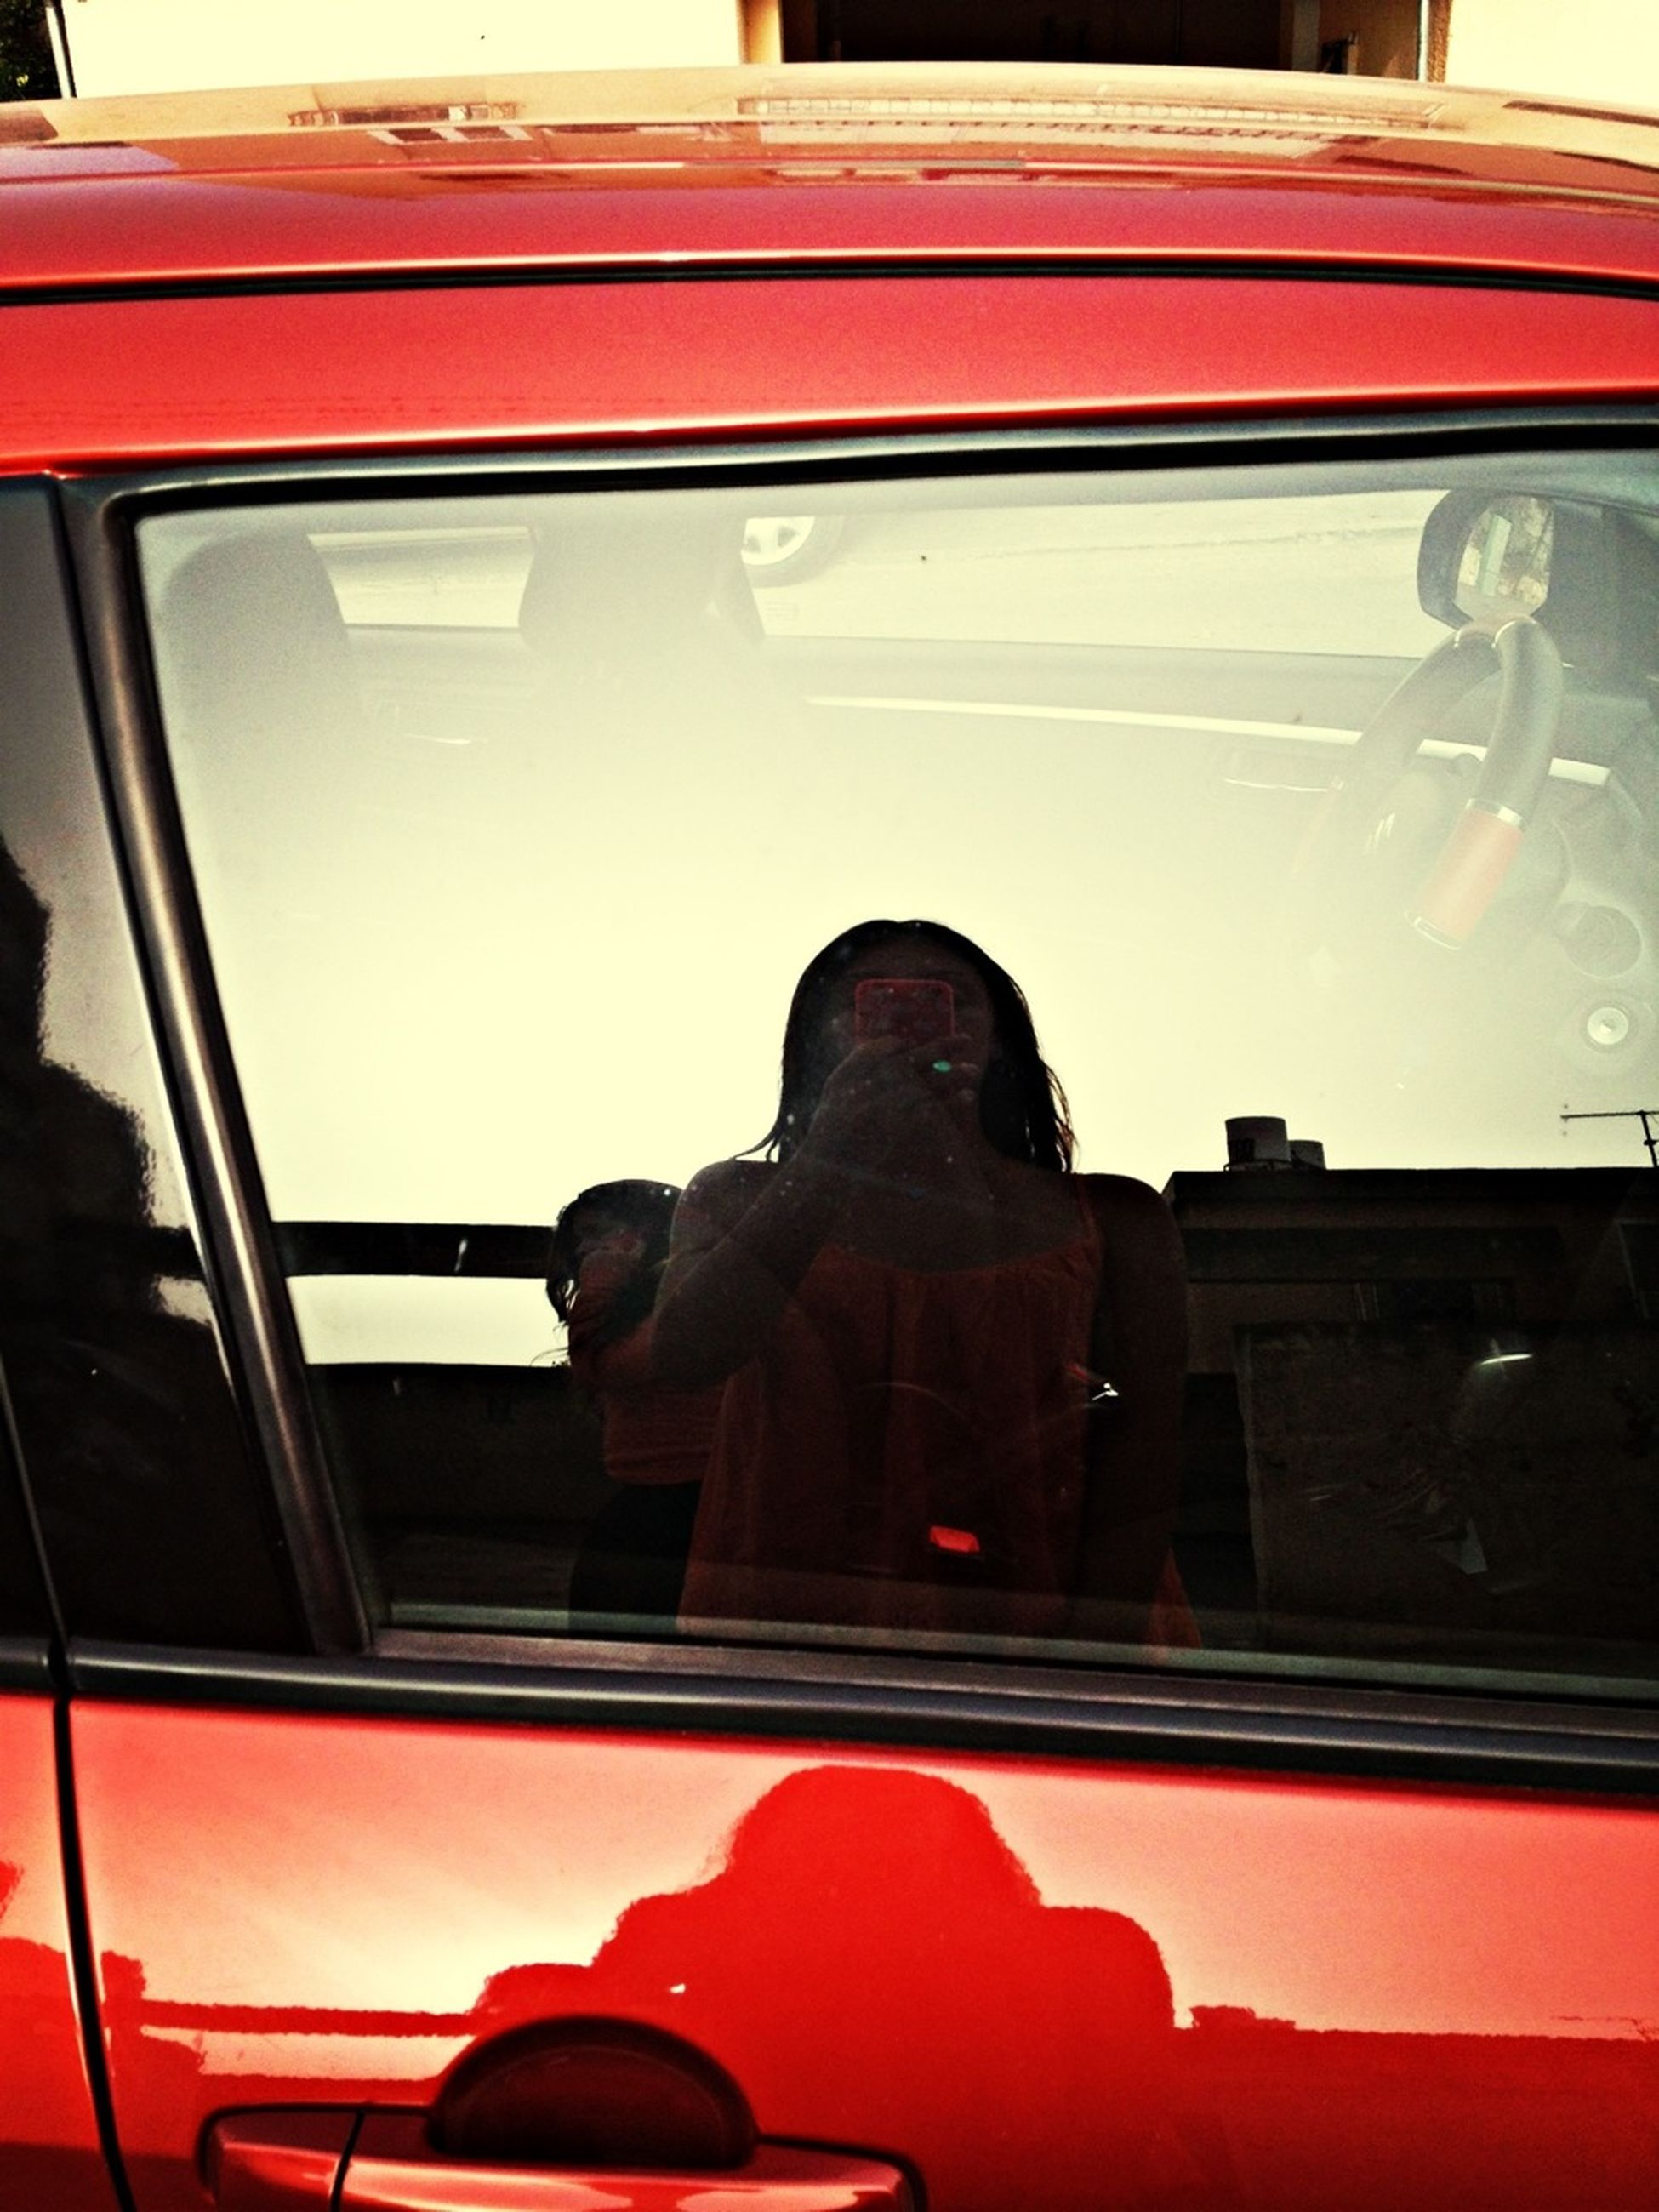 red, mode of transport, transportation, window, car, glass - material, indoors, transparent, land vehicle, reflection, no people, close-up, day, vehicle interior, part of, water, travel, sitting, side view